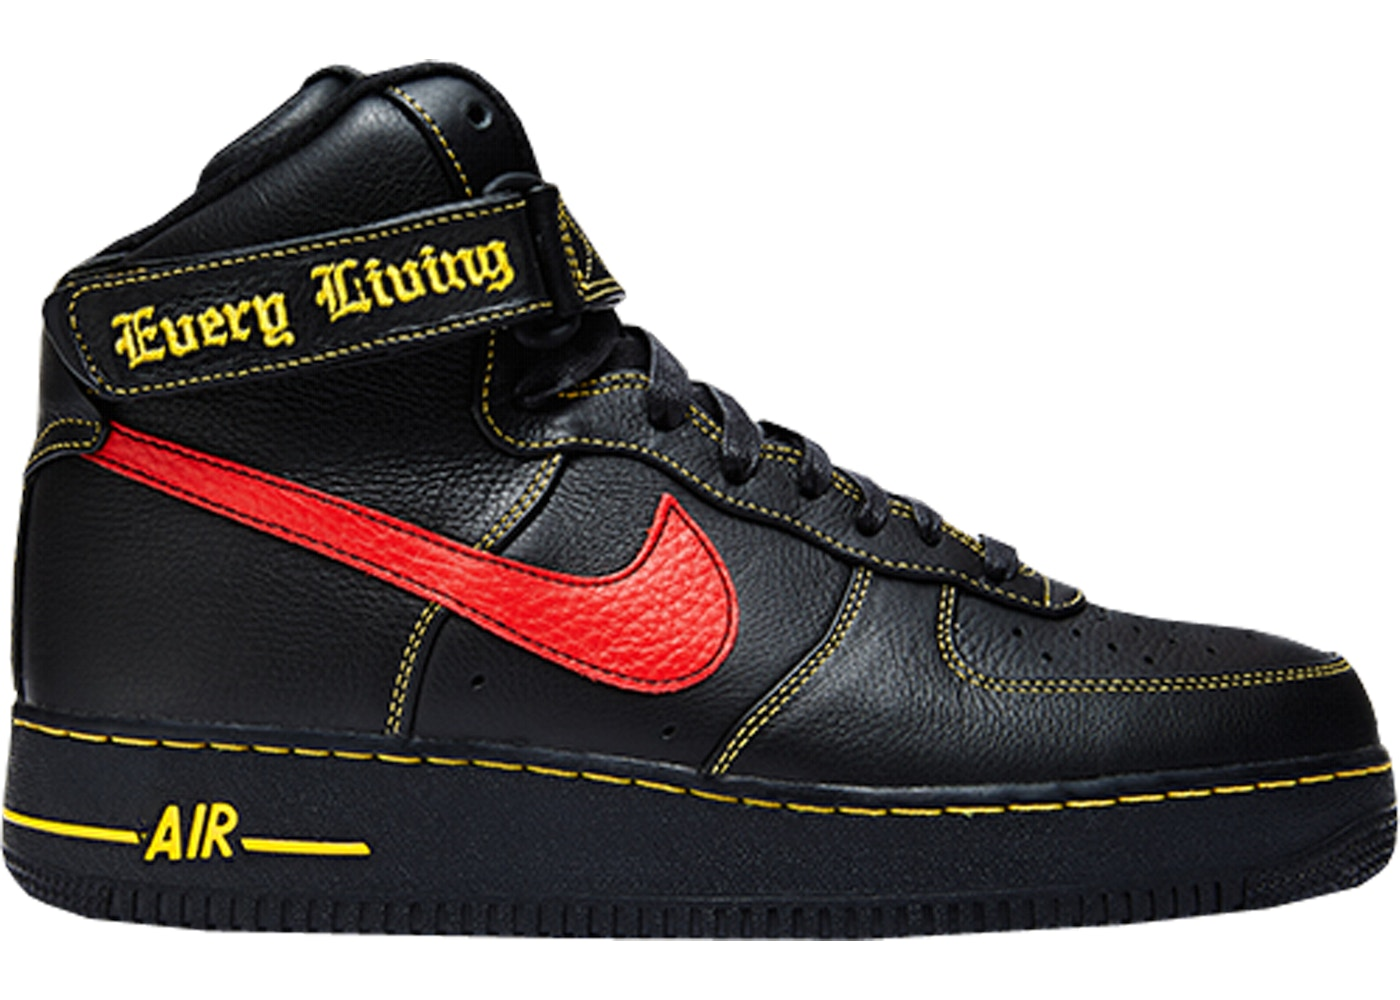 Mens Nike Air Force 1 25Th High Shoes Black Red Brown Discount